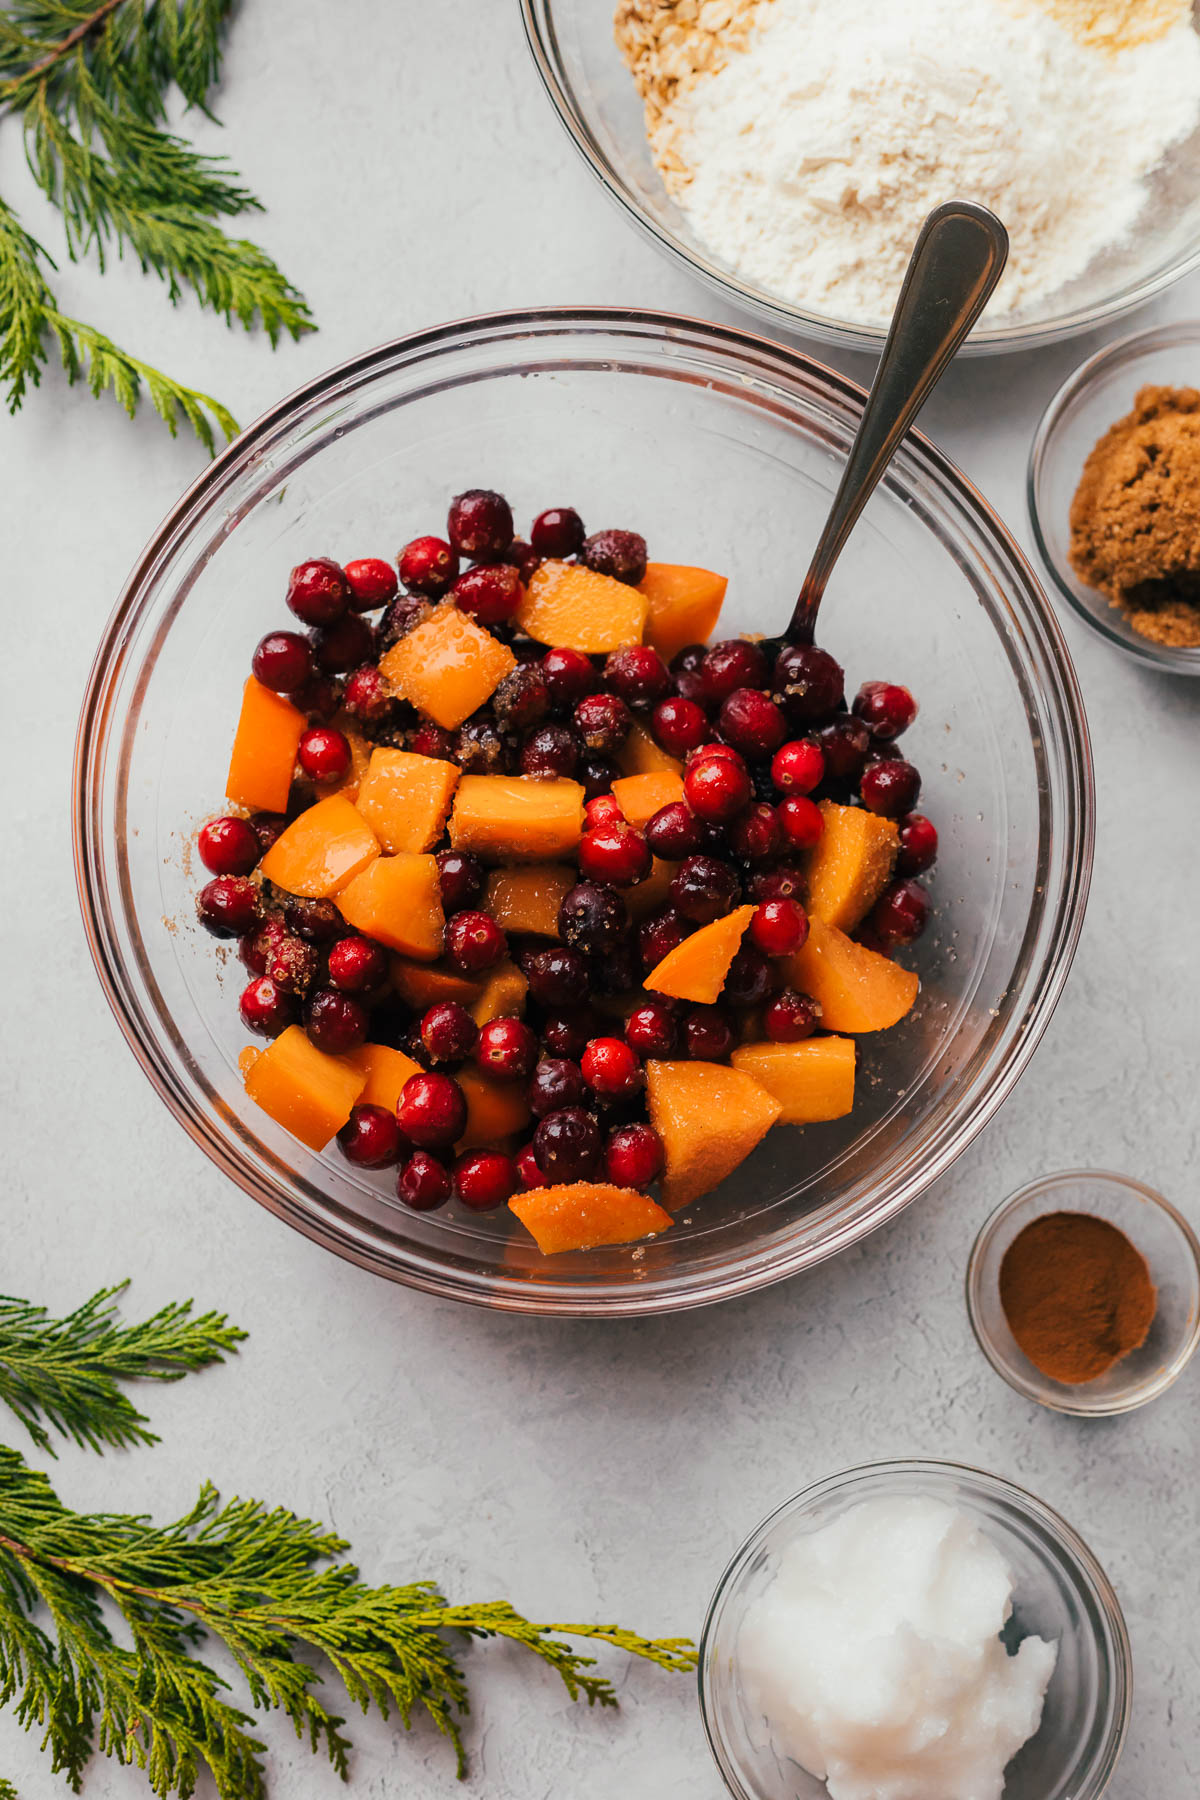 Cranberries and persimmons in a bowl.